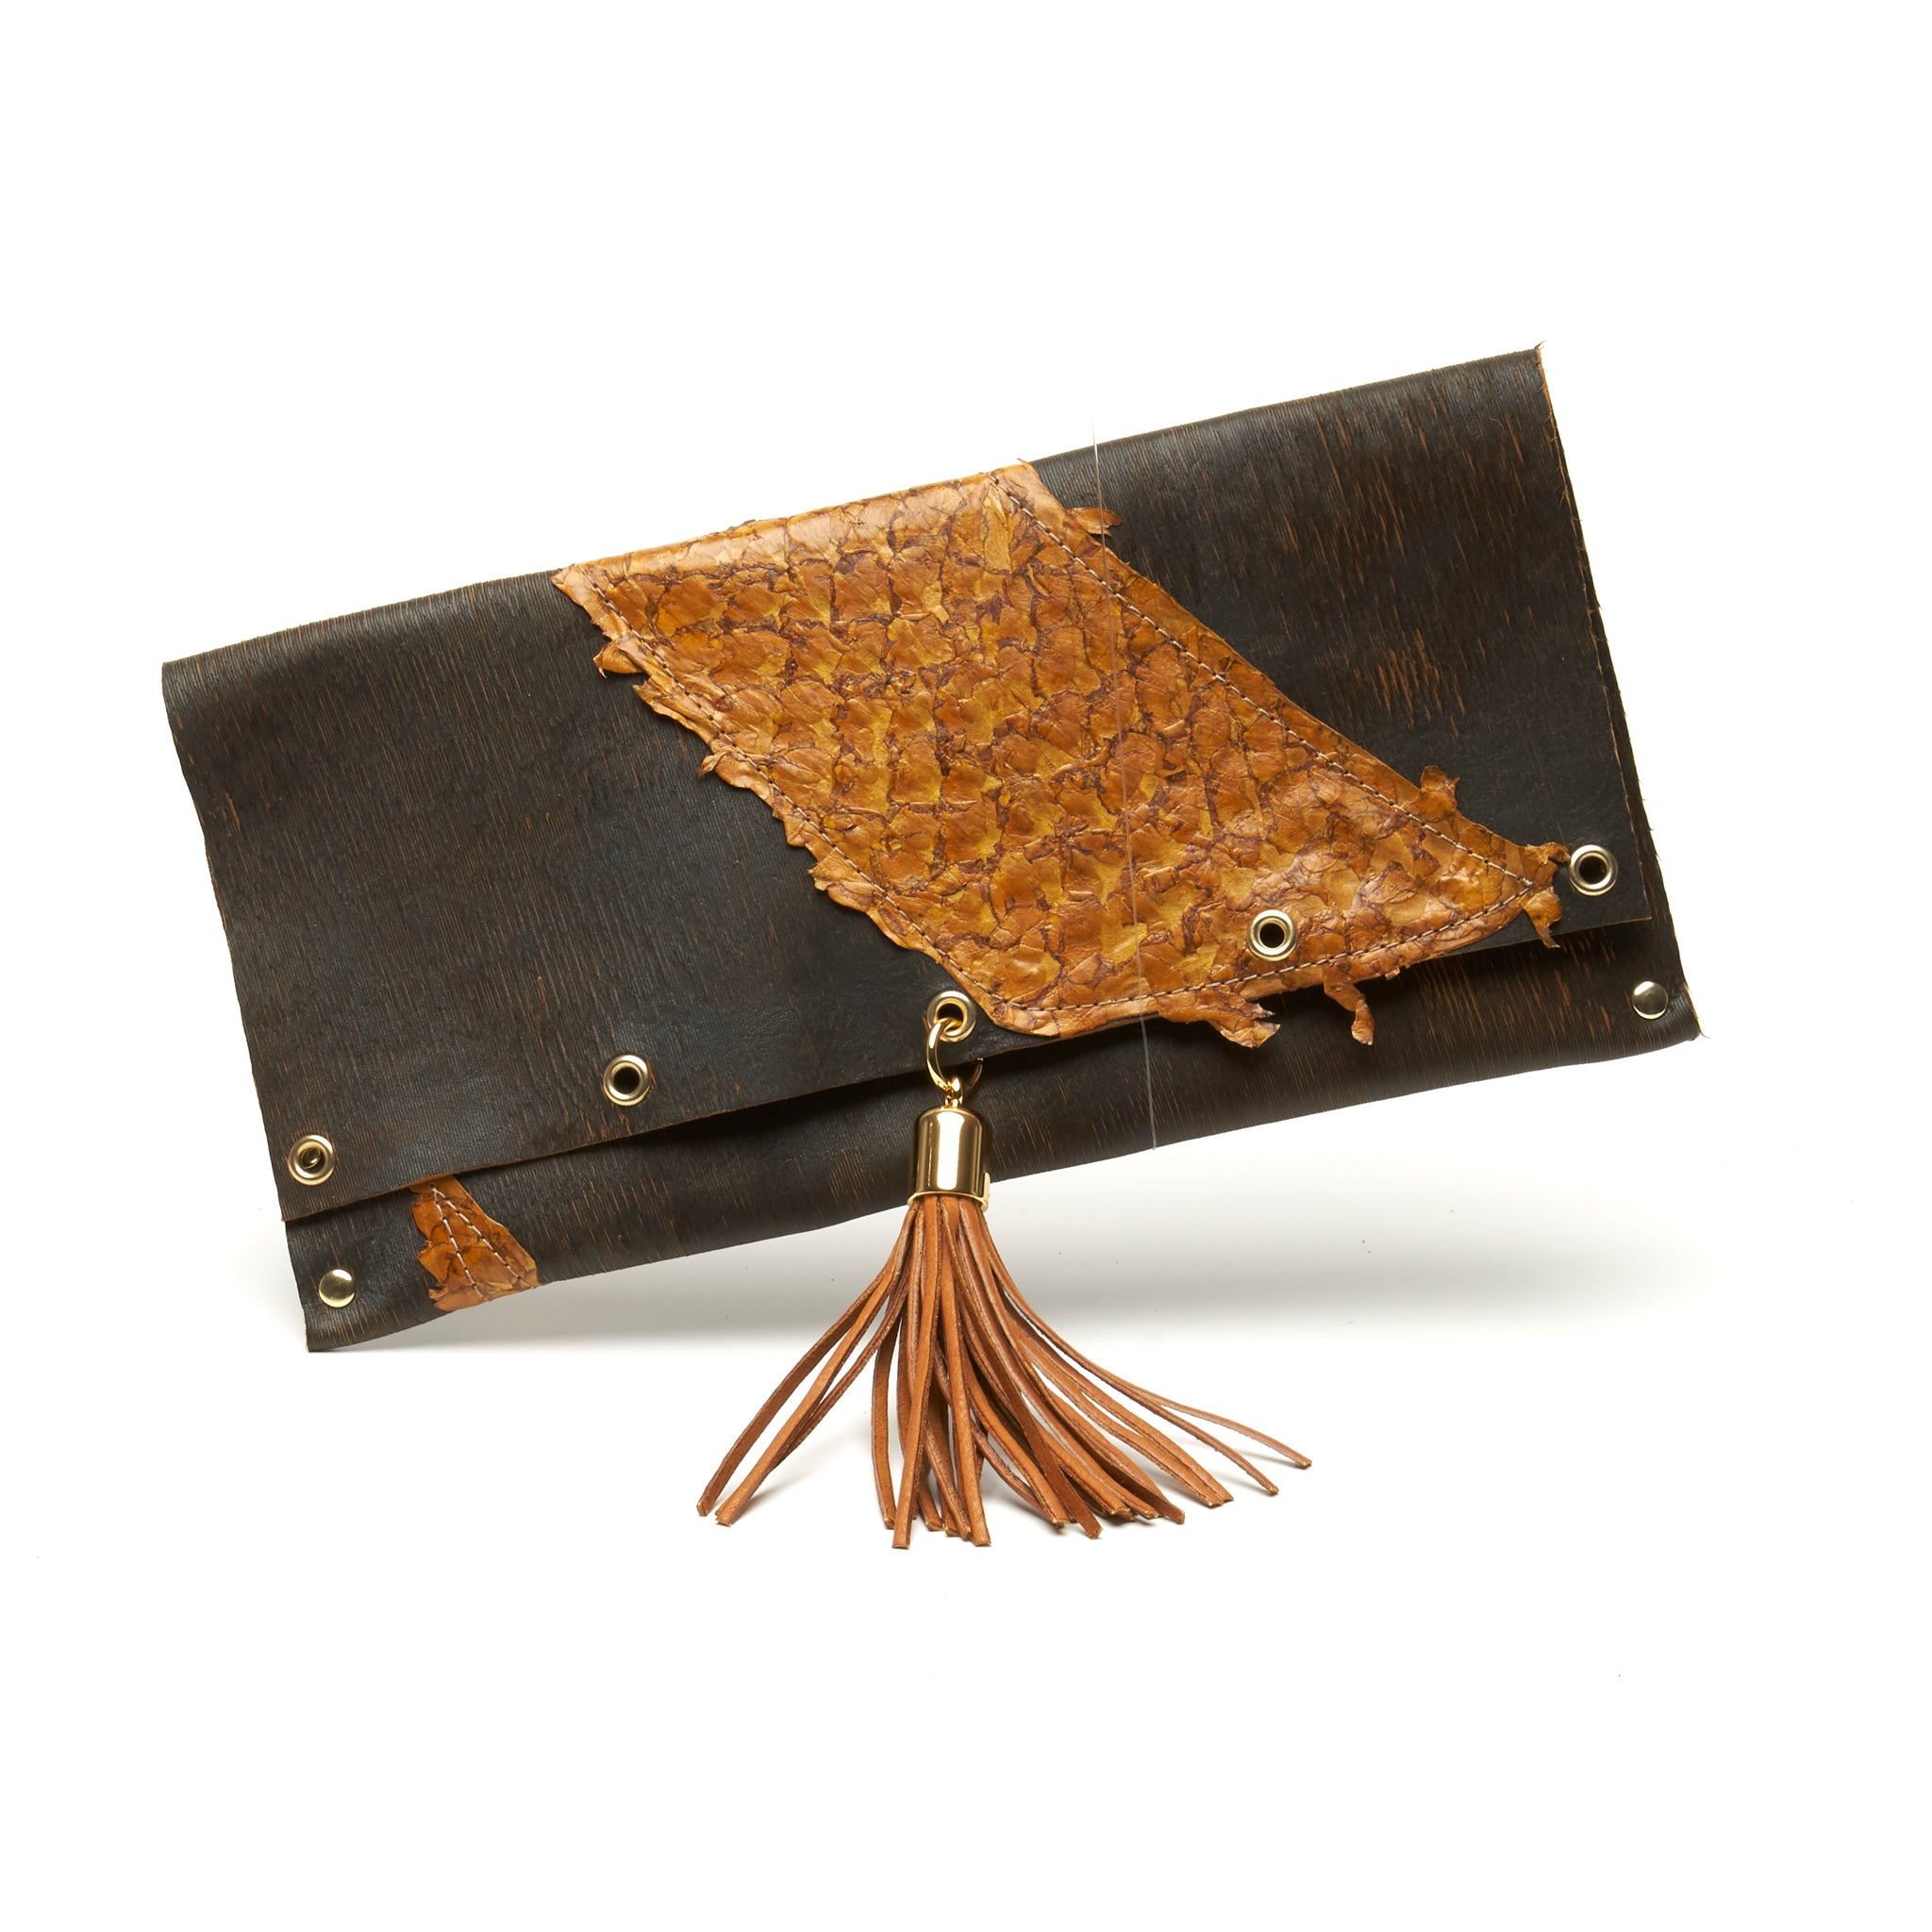 LASER CUT COWHIDE AND FISH LEATHER CLUTCH WITH DEERSKIN TASSEL AND MAGNETIC CLOSURE. by NYET Jewelry